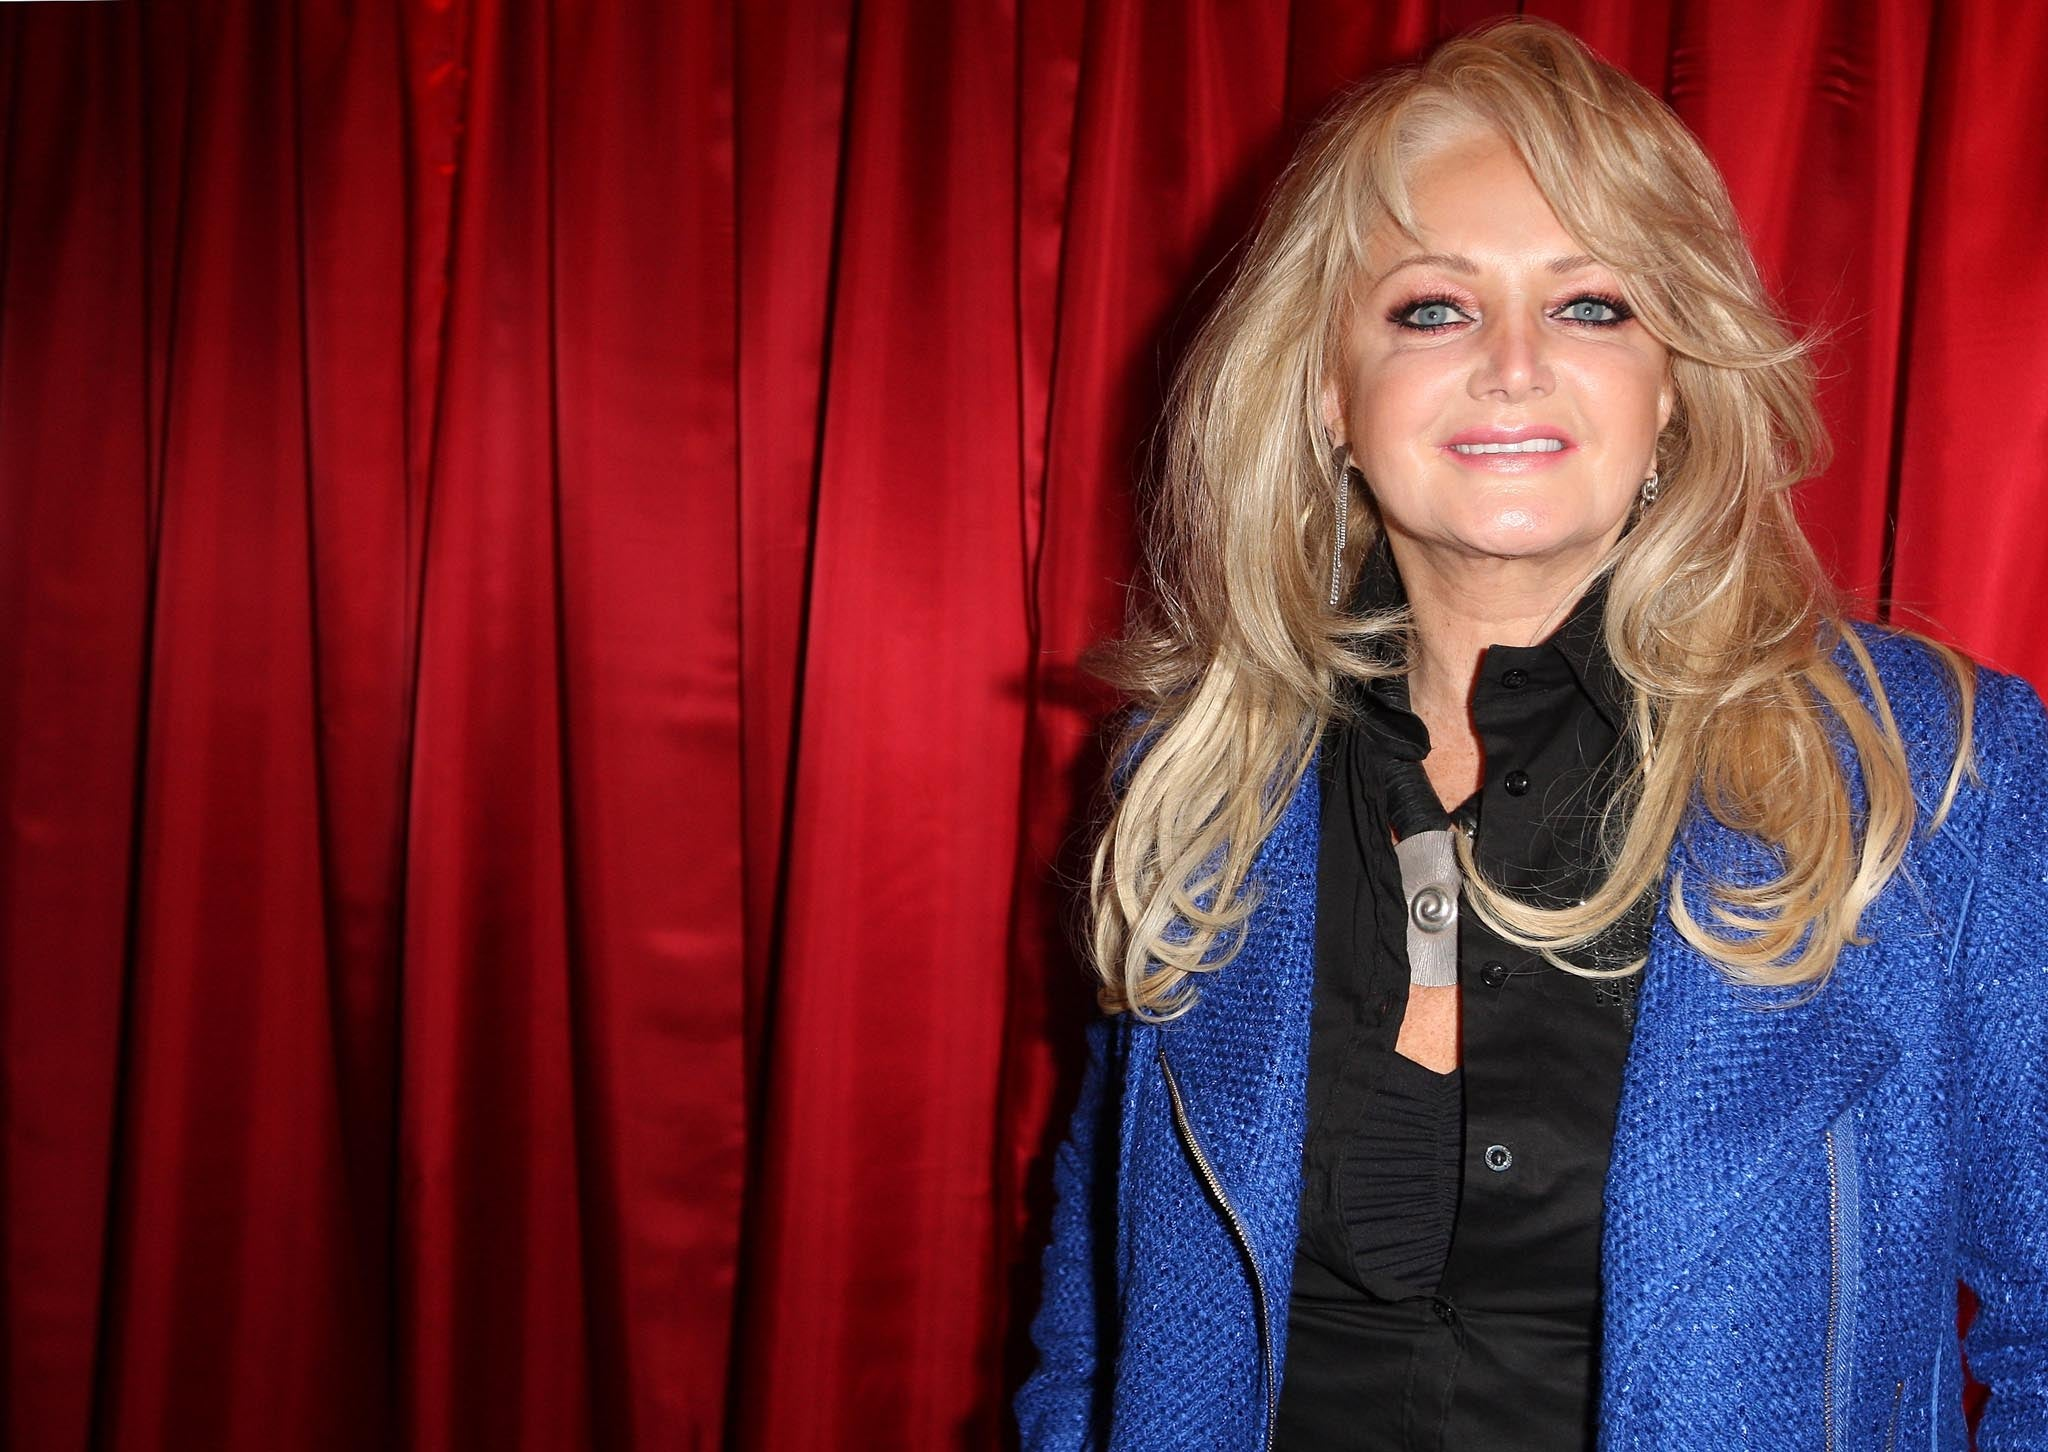 bonnie tyler - photo #27